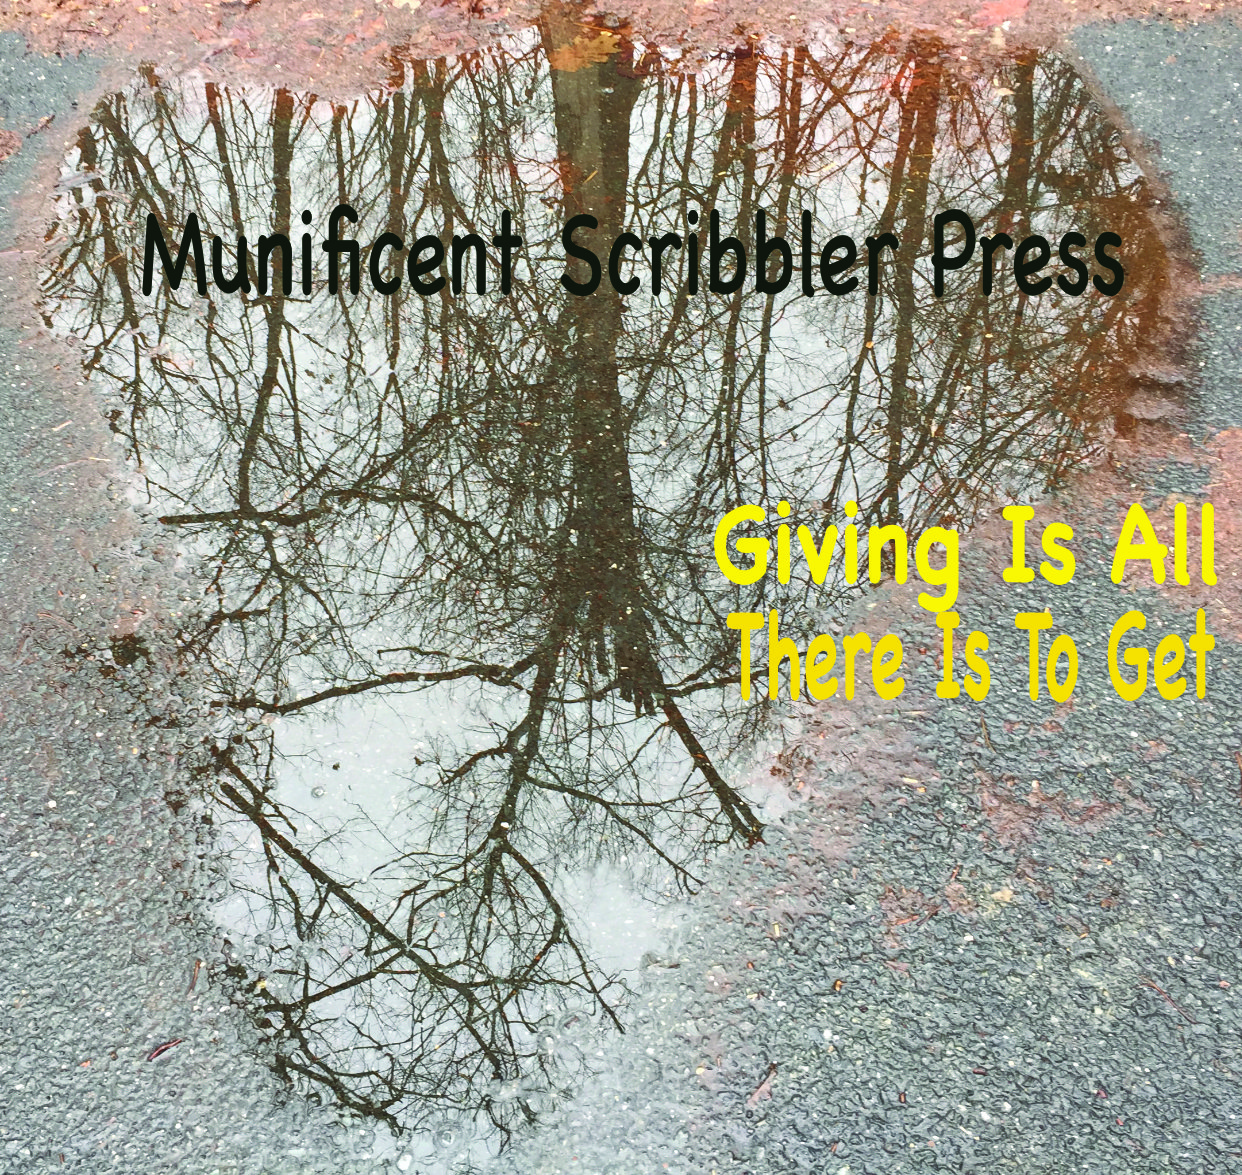 Munificent Scribbler Press